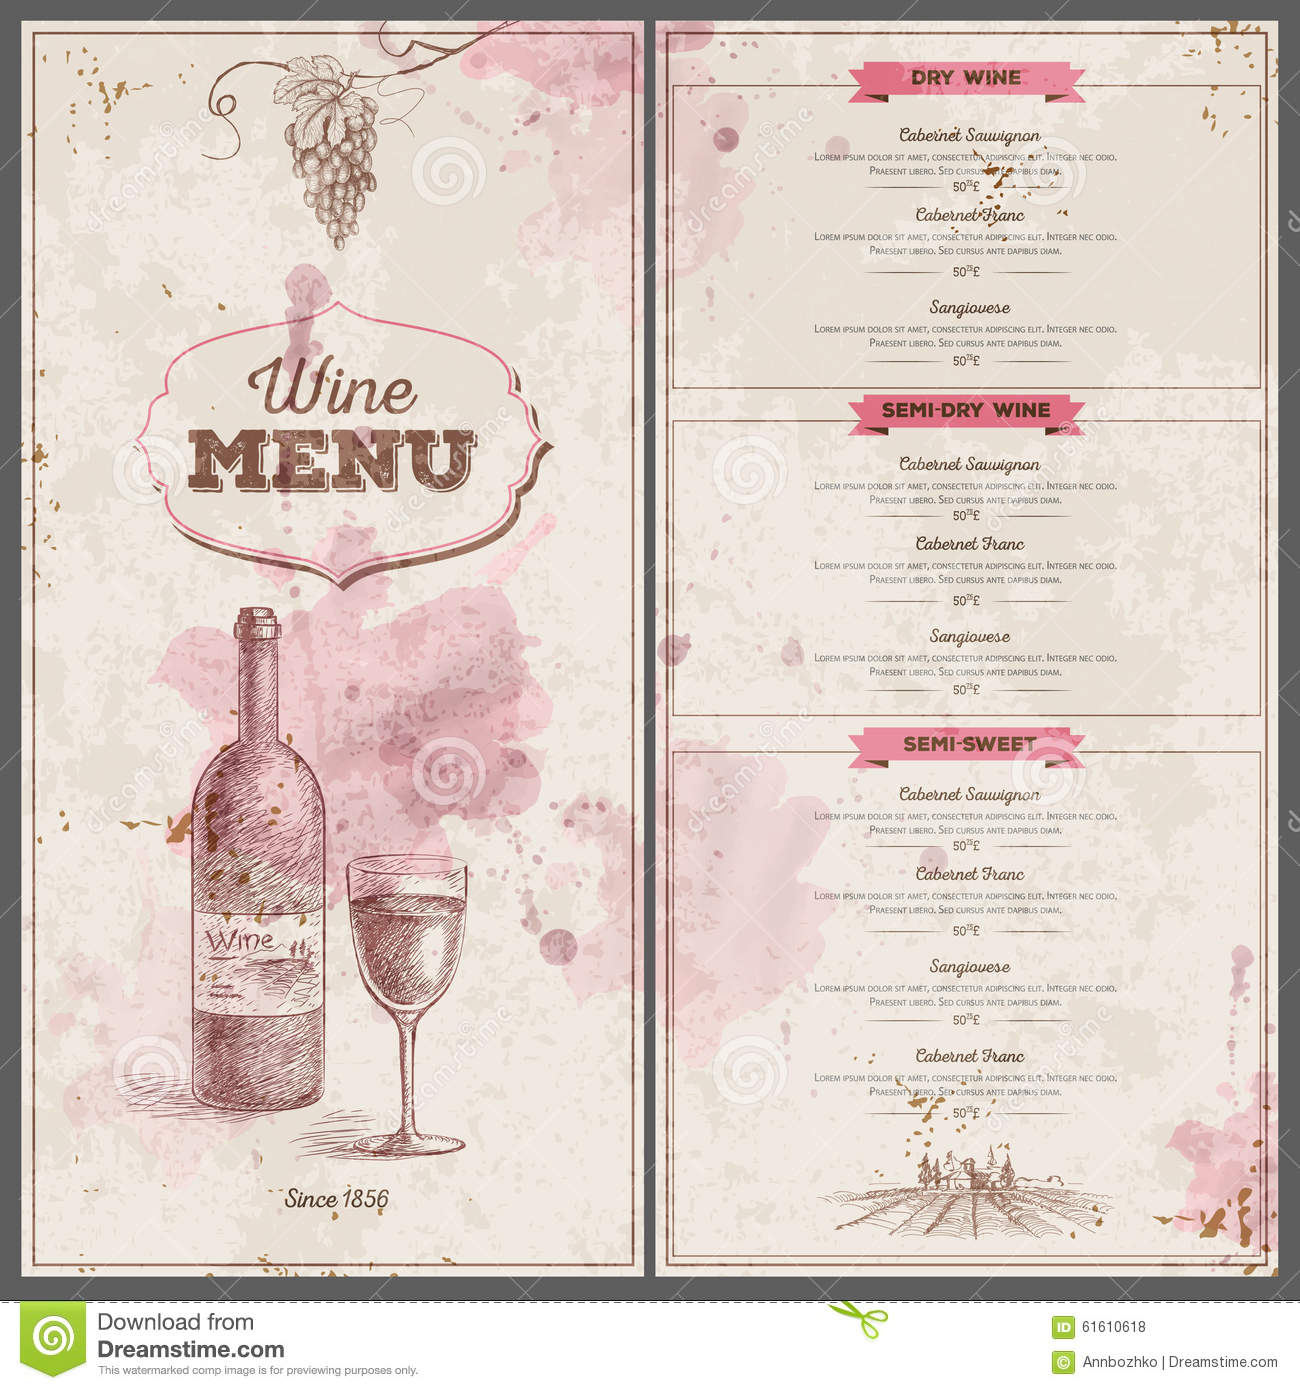 Vintage wine menu design document template stock vector for Wine dinner menu template